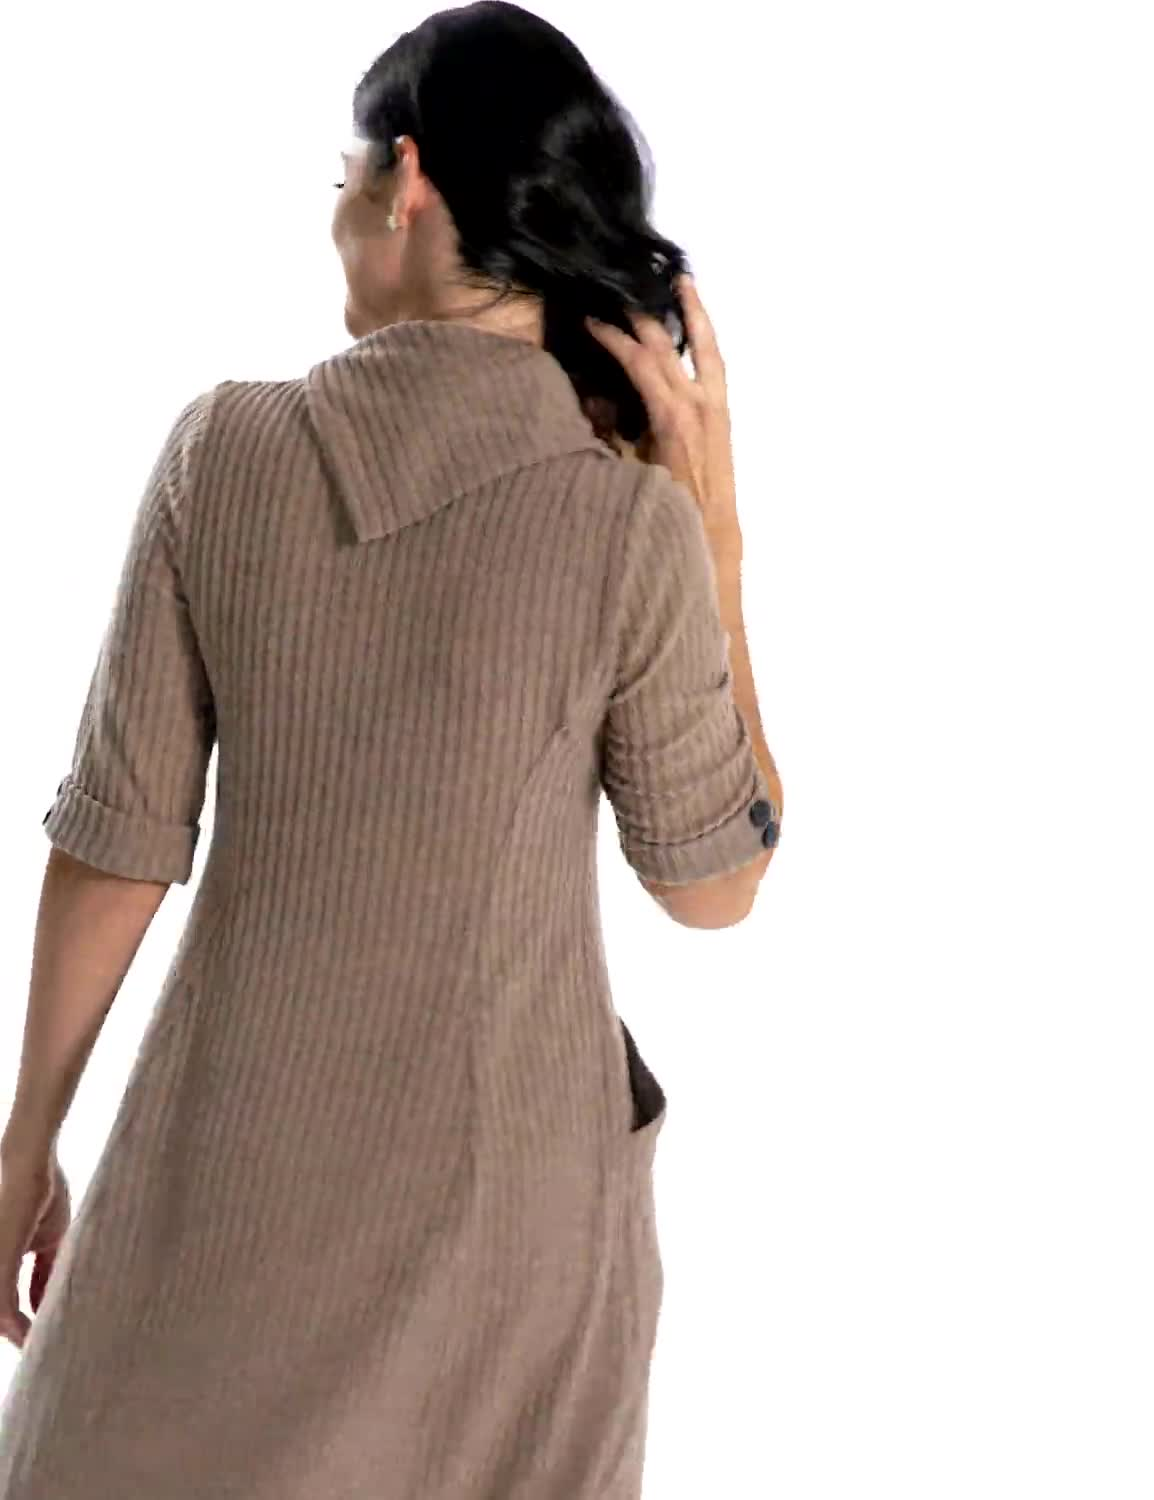 Split Cowl Neck Knit Dress - Misses - Video